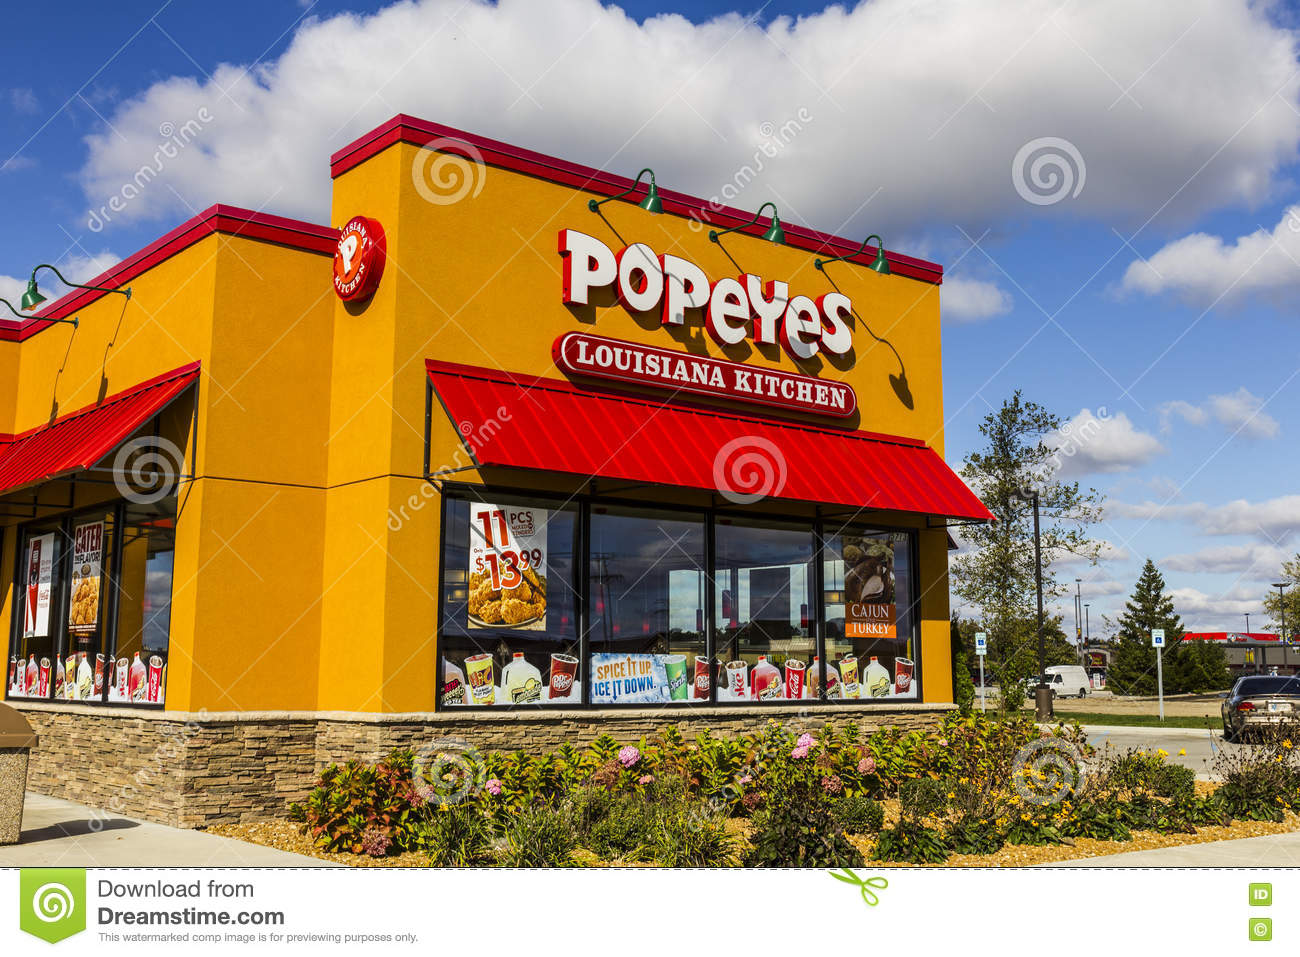 Popeyes Louisiana Kitchen Building anderson - circa october 2016: popeyes louisiana kitchen fast food